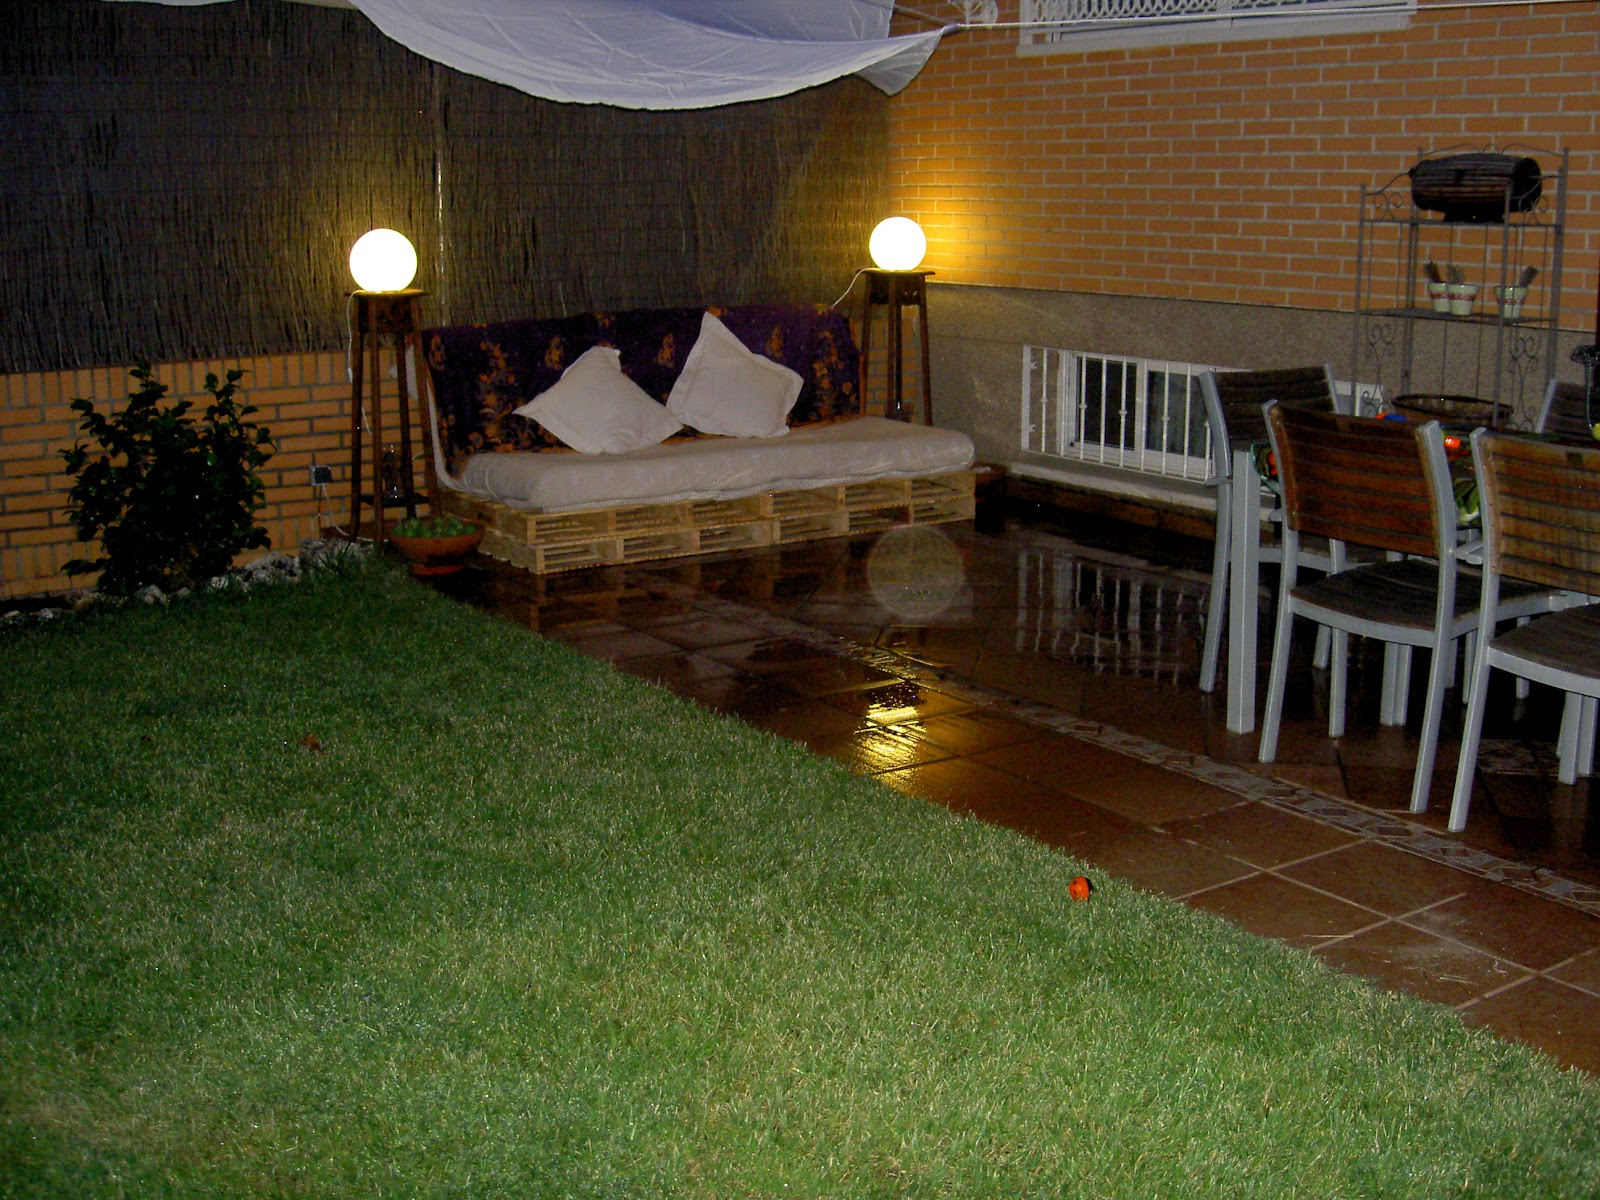 El taller de mis cositas rinc n chill out - Rincon chill out ...